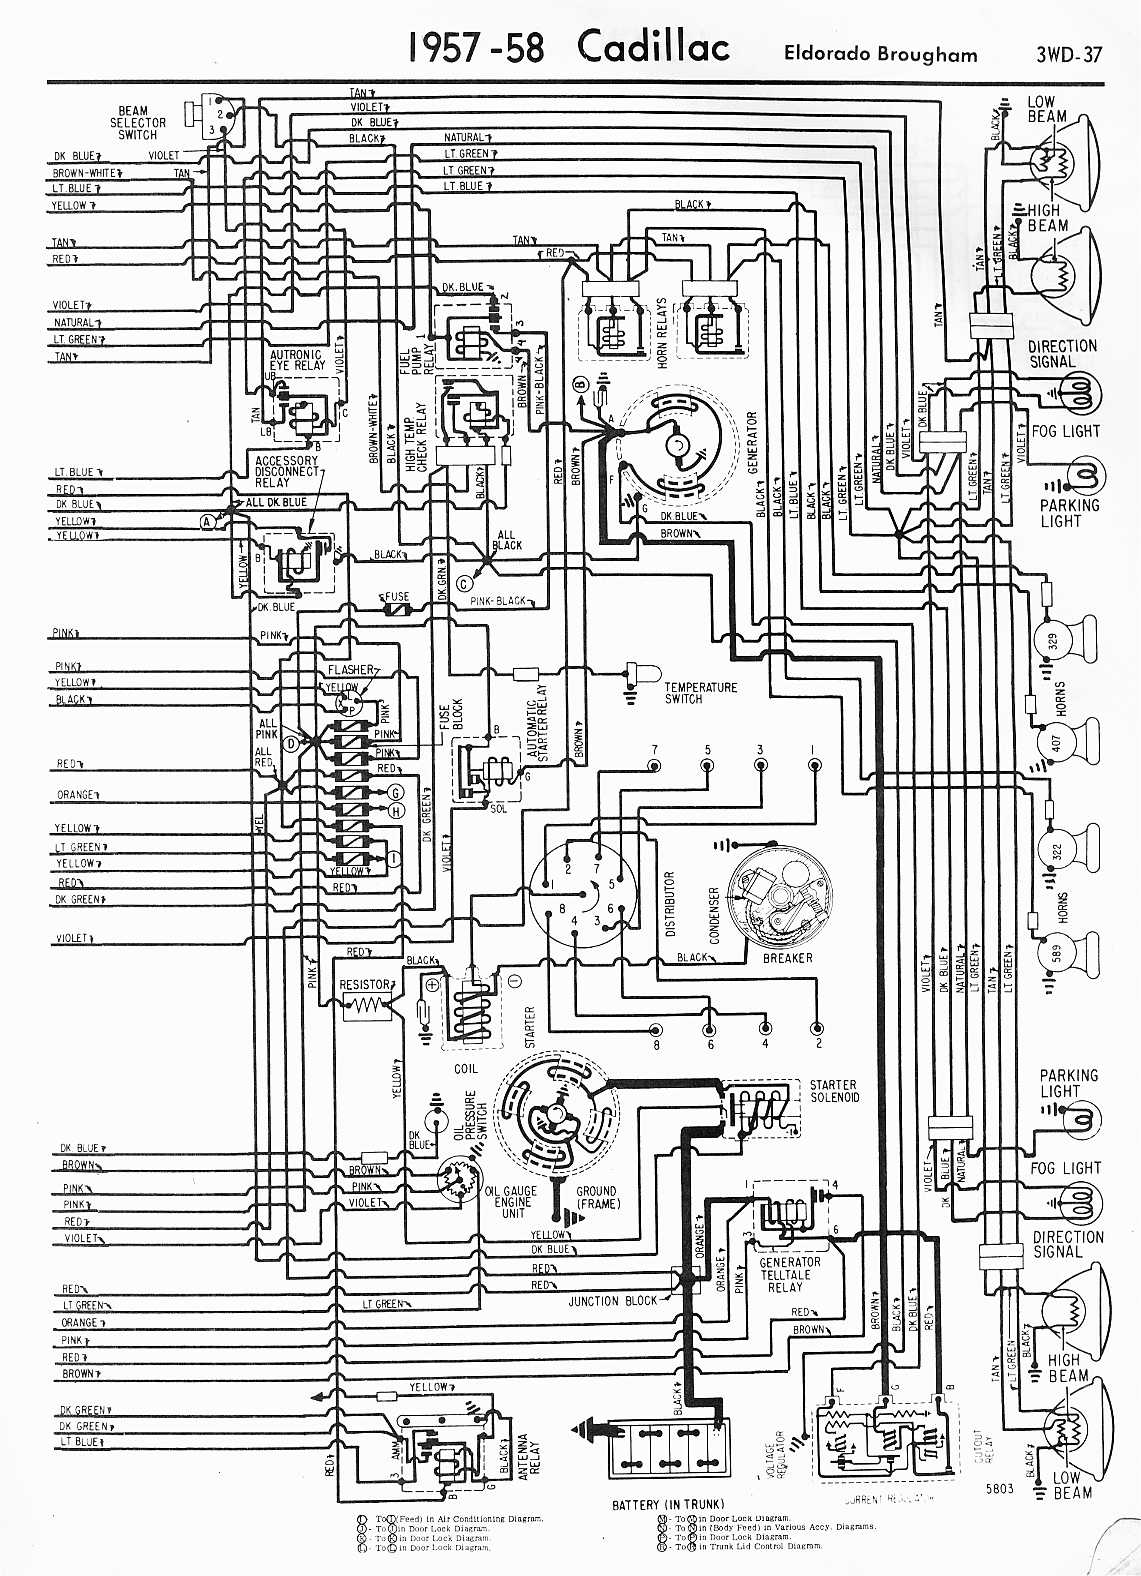 1957-58 eldorado brougham right  cadillac wiring diagrams: 1957-1965  1957-58 eldorado brougham right  1964 cadillac deville fuse box